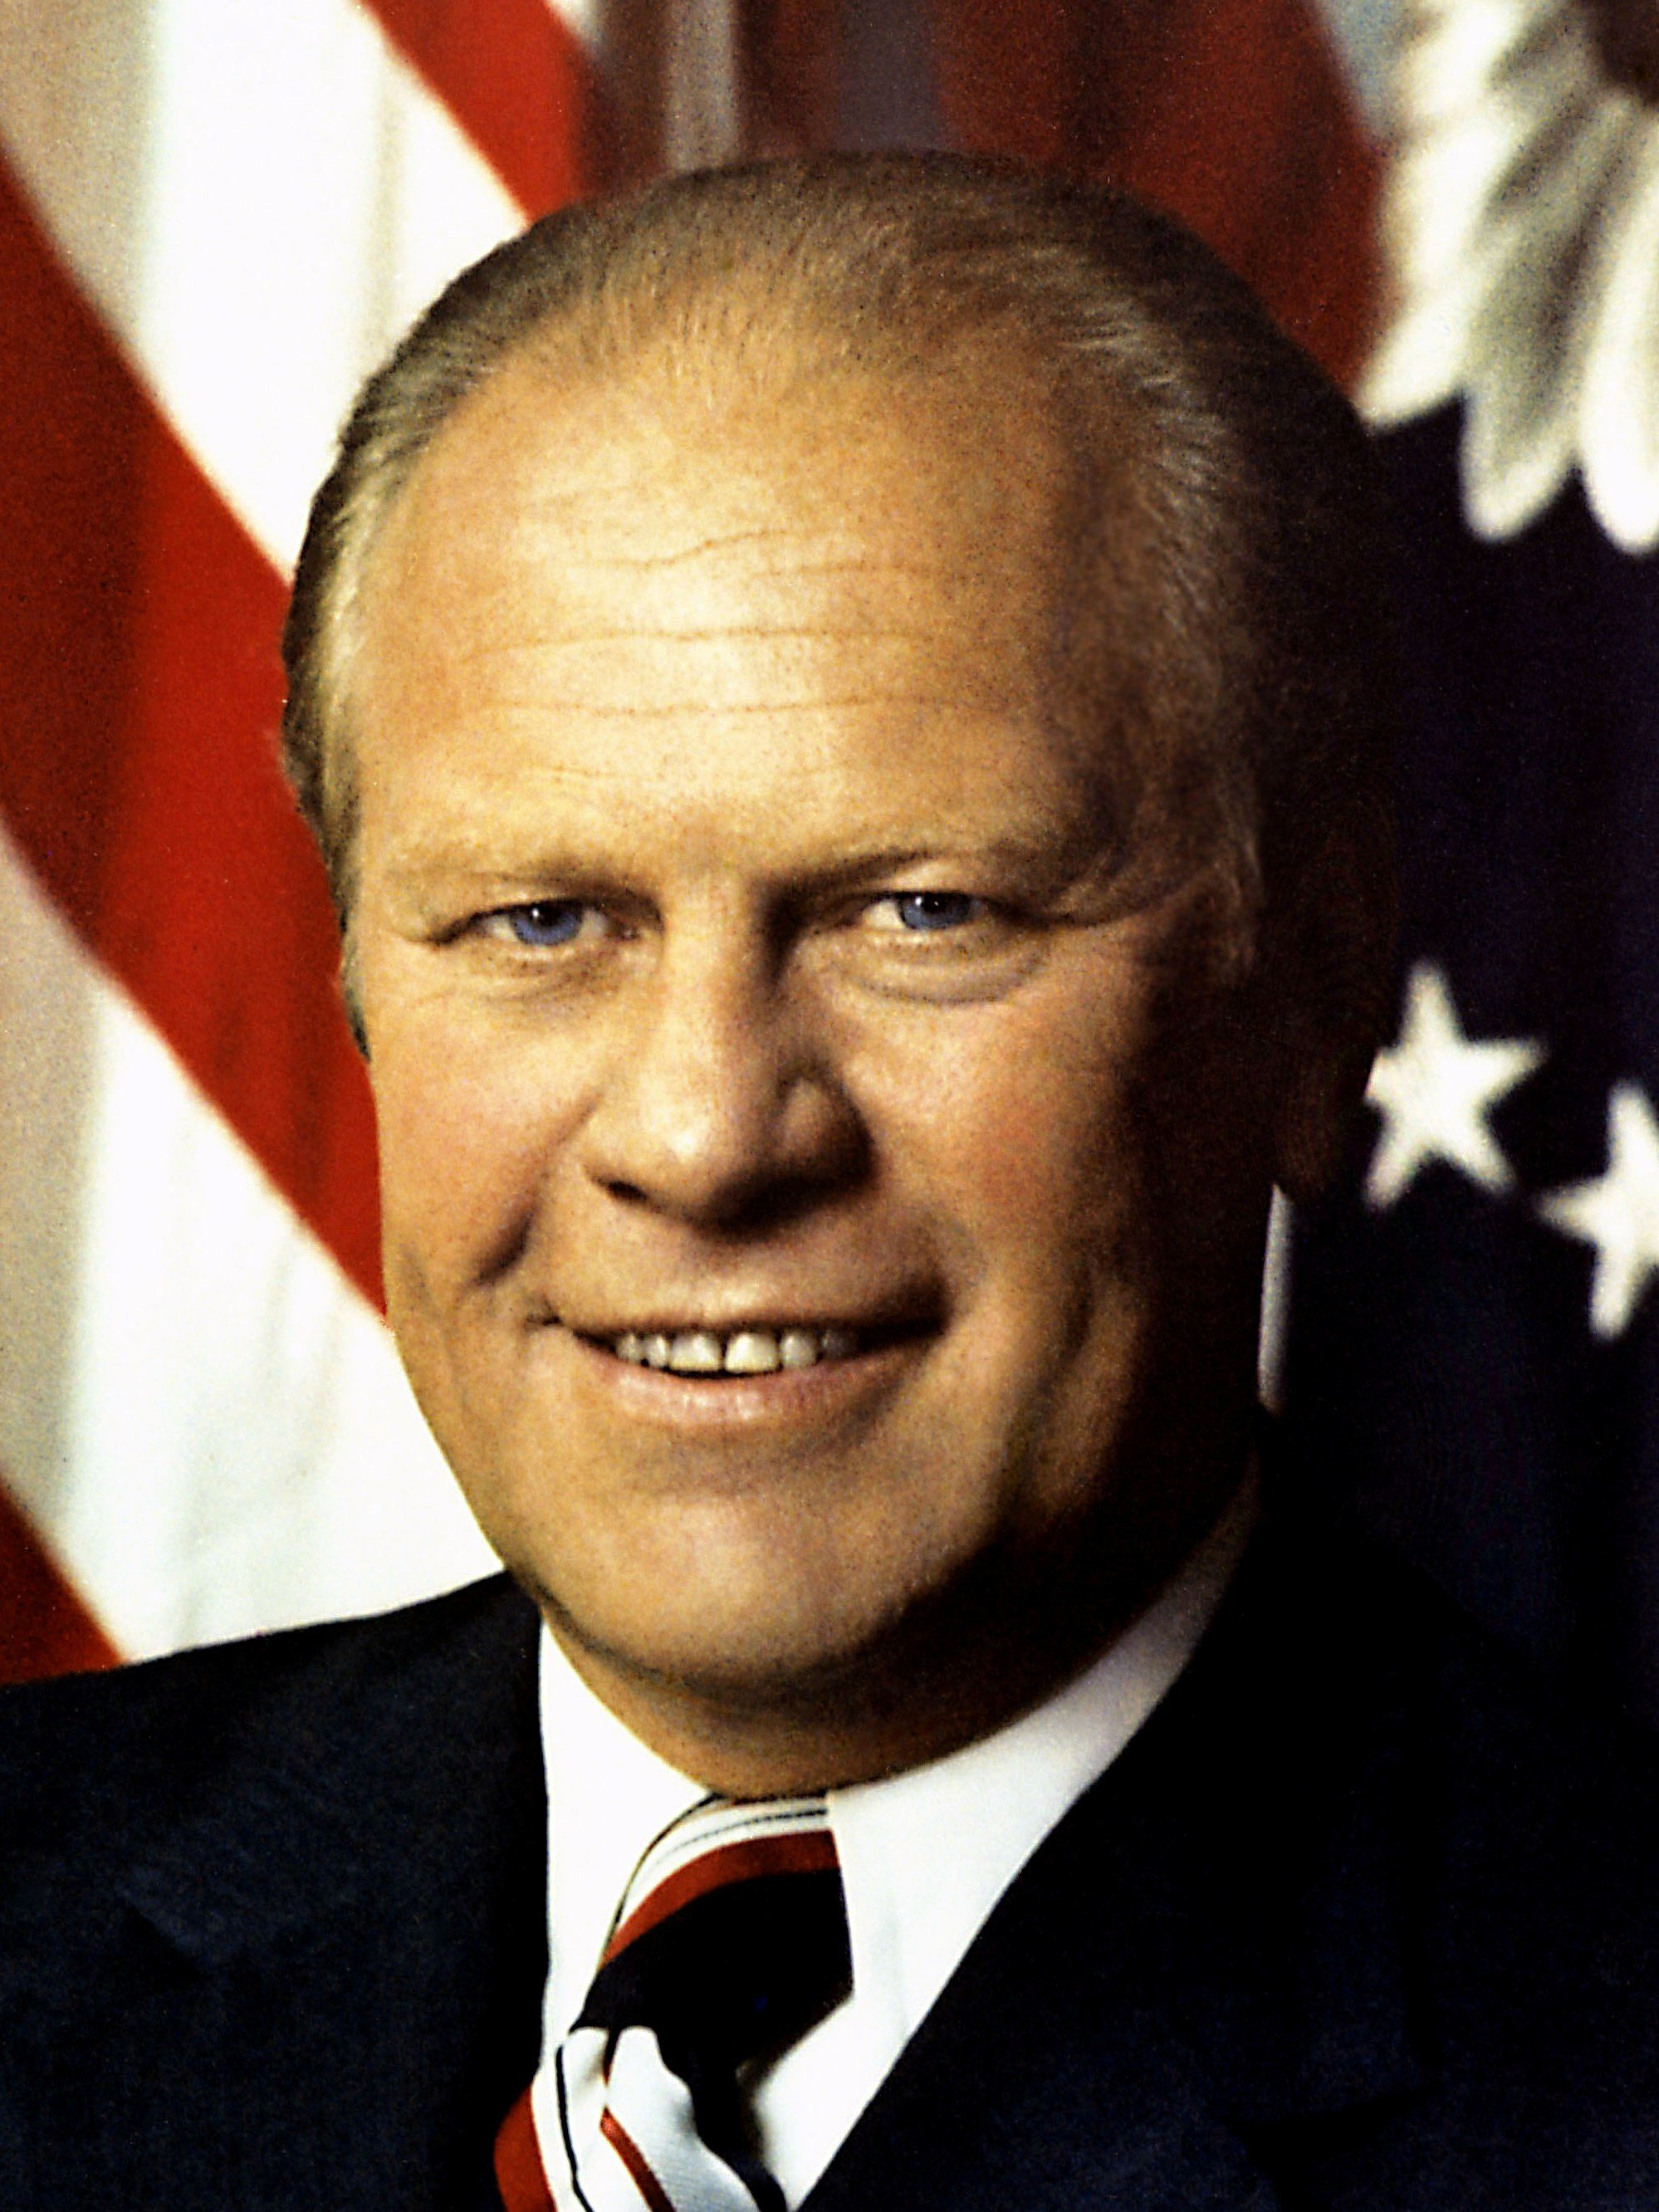 Serving as the 38th President from 1974-1977, Gerald R. Ford Jr. (1913-2006) was a moderate politician whose presidency was largely overshadowed by Richard Nixon's Watergate scandal. Image obtained from Wikimedia.